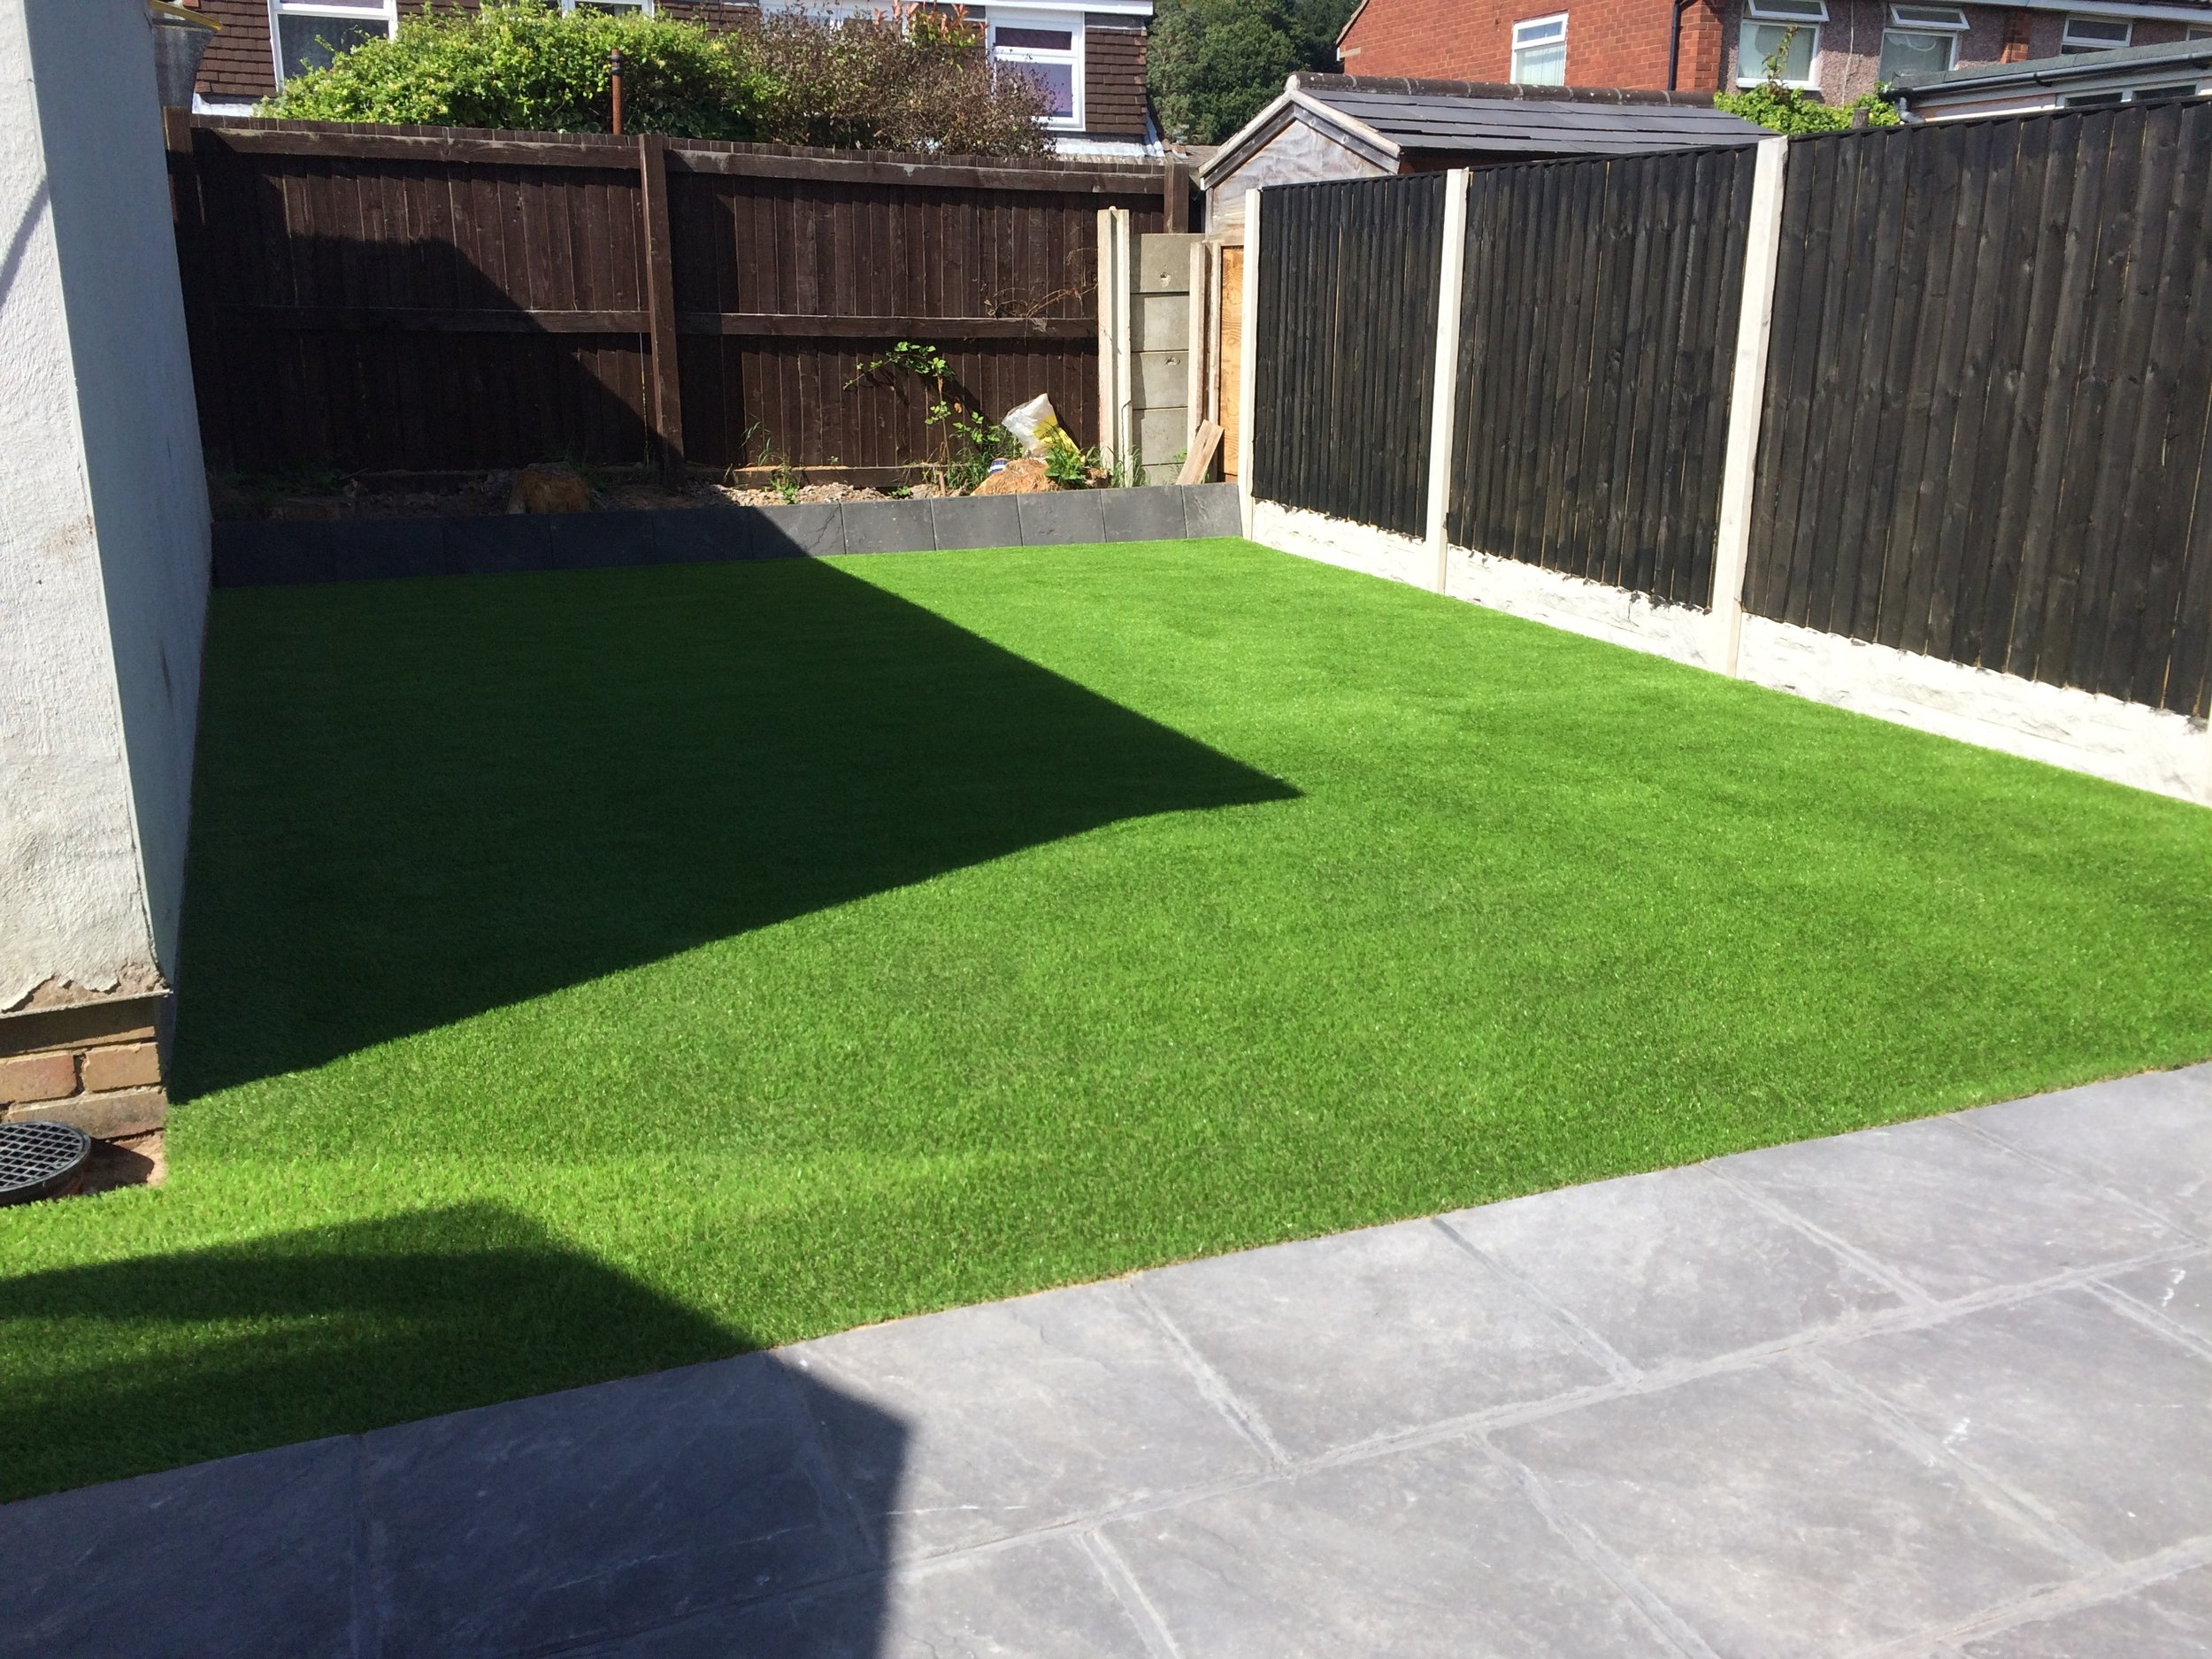 Fake grass and patio paving